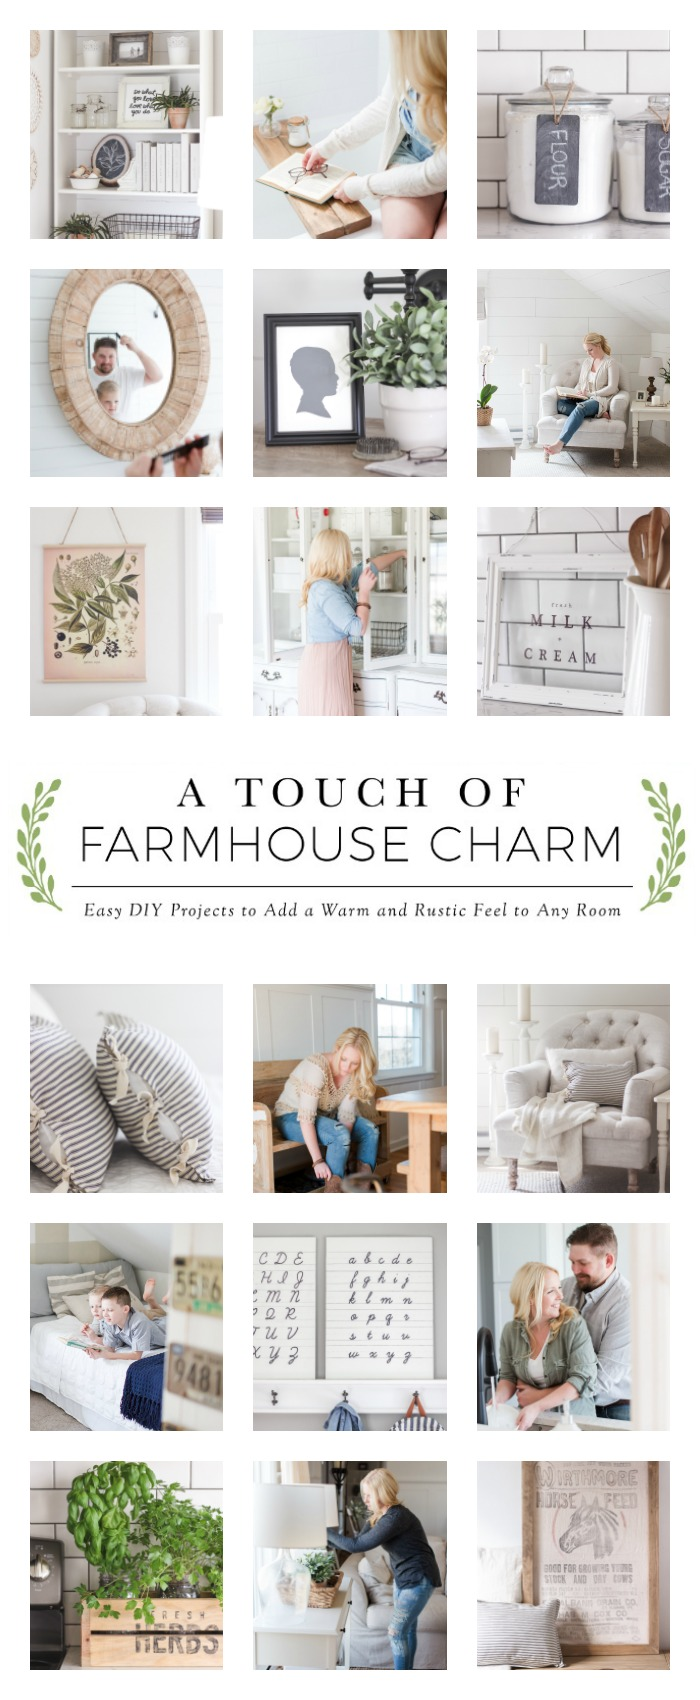 A Touch of Farmhouse Charm 1st Anniversary - Love Grows Wild